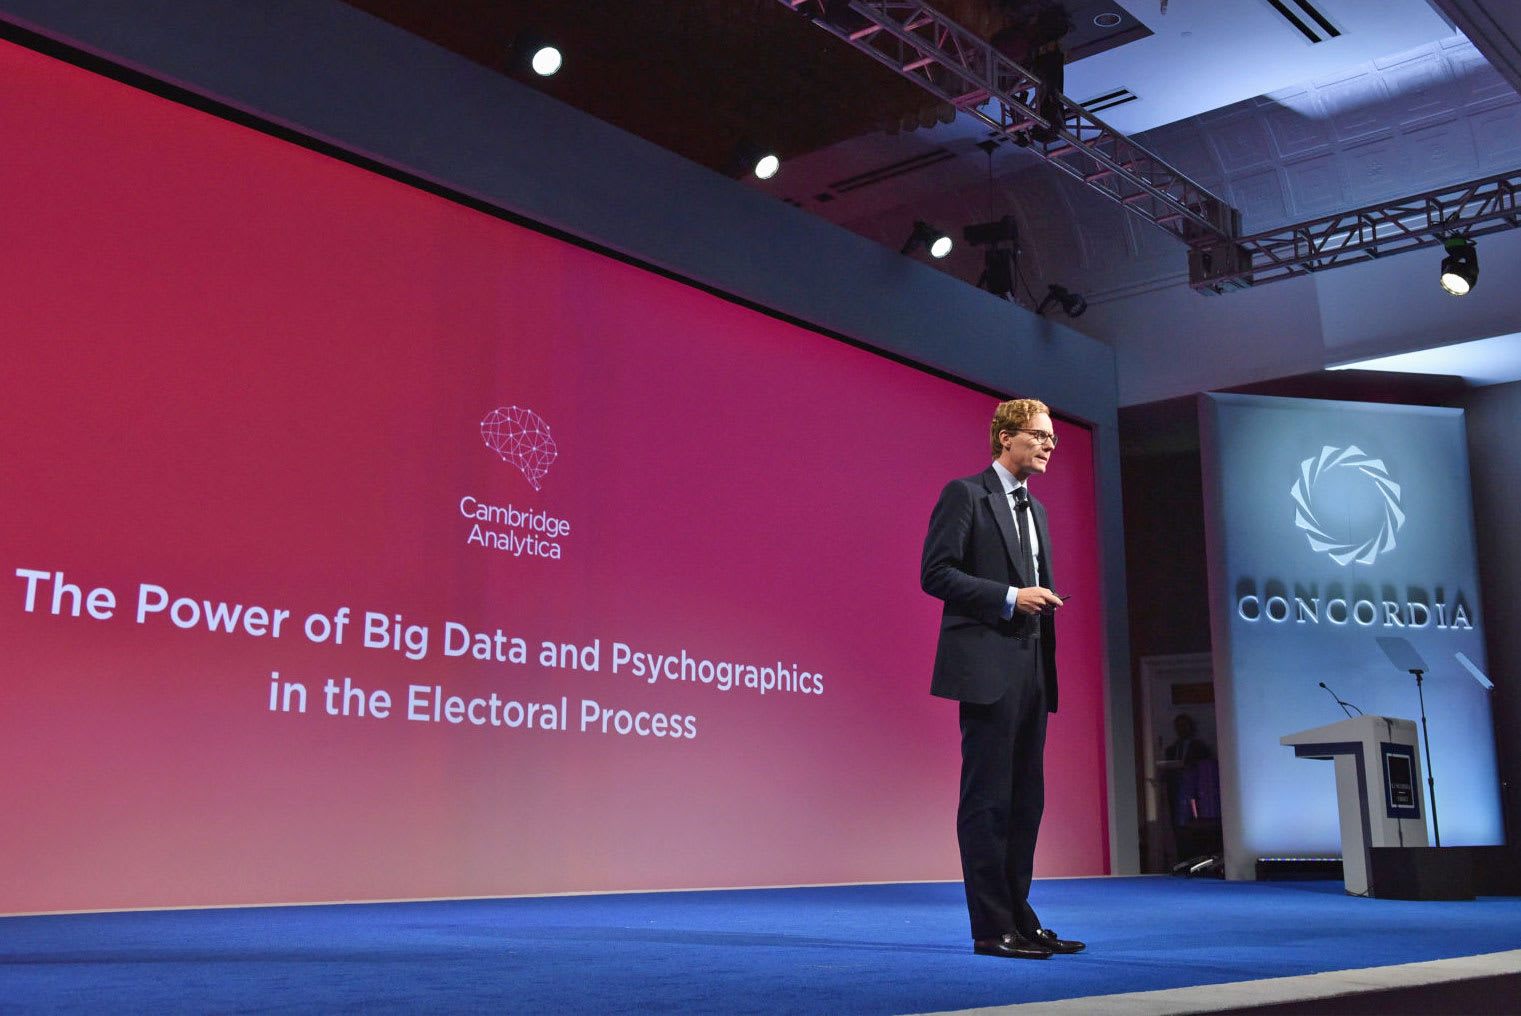 Facebook may have broken FTC deal in Cambridge Analytica incident